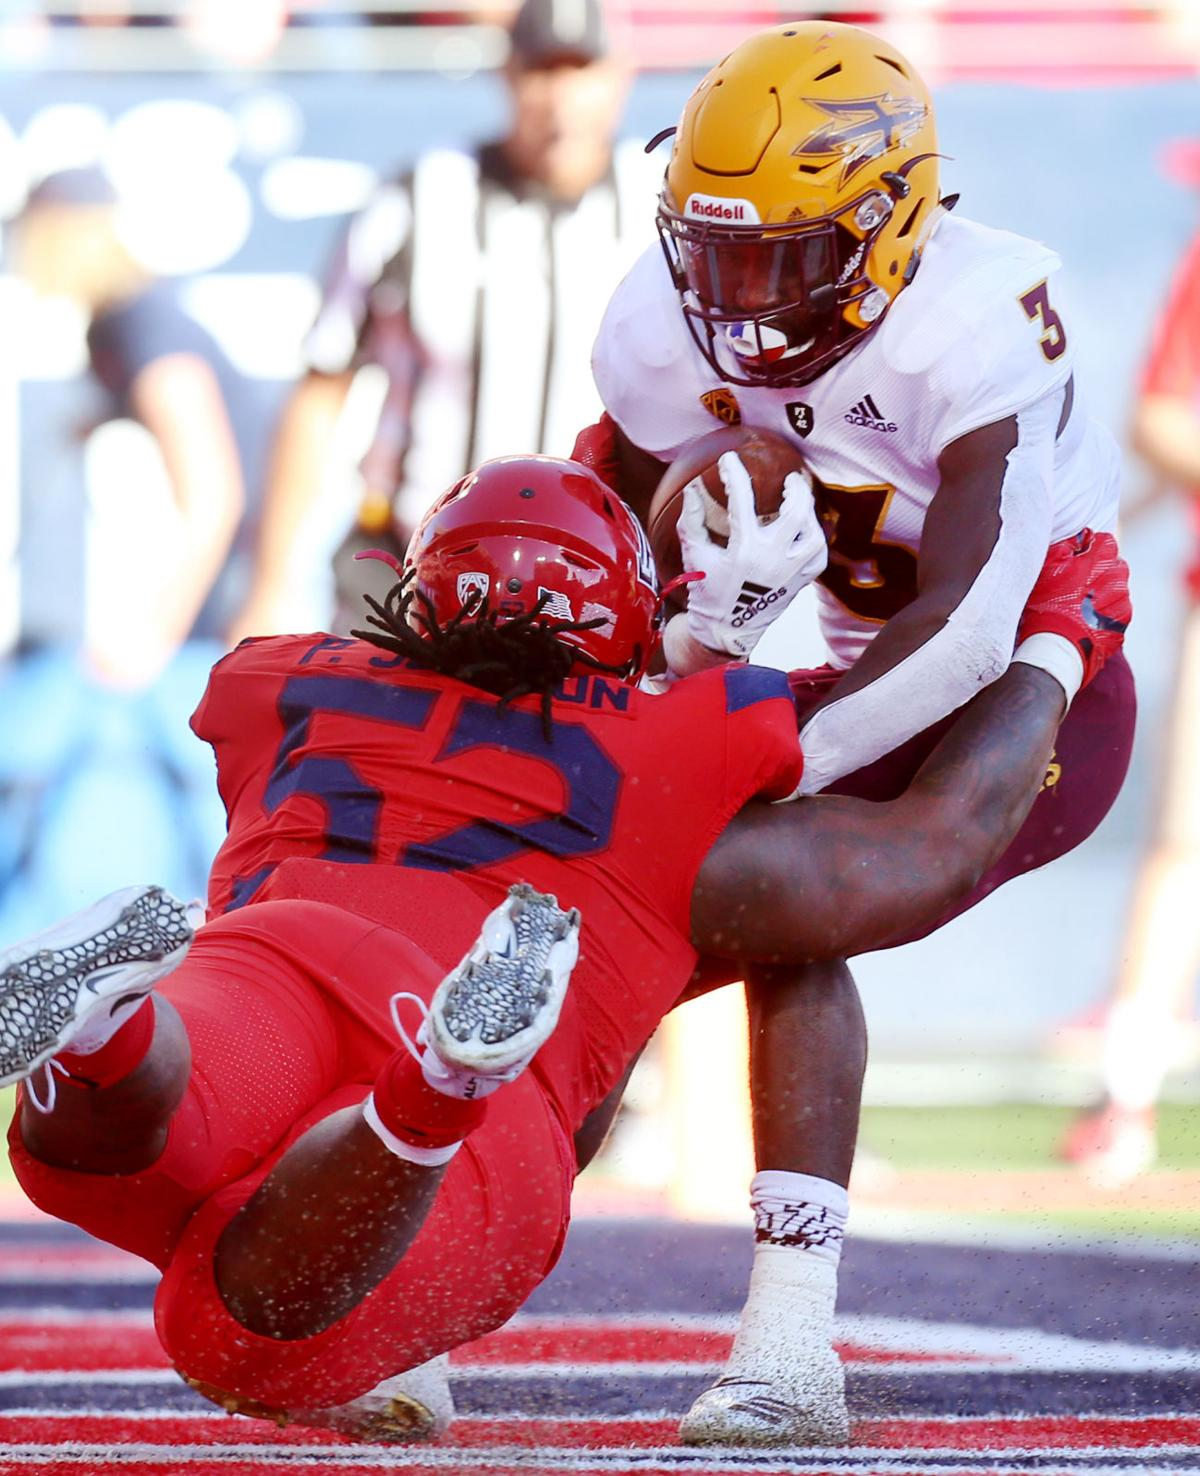 Arizona Wildcats vs. Arizona State Sun Devils in the 2018 Territorial Cup (copy)